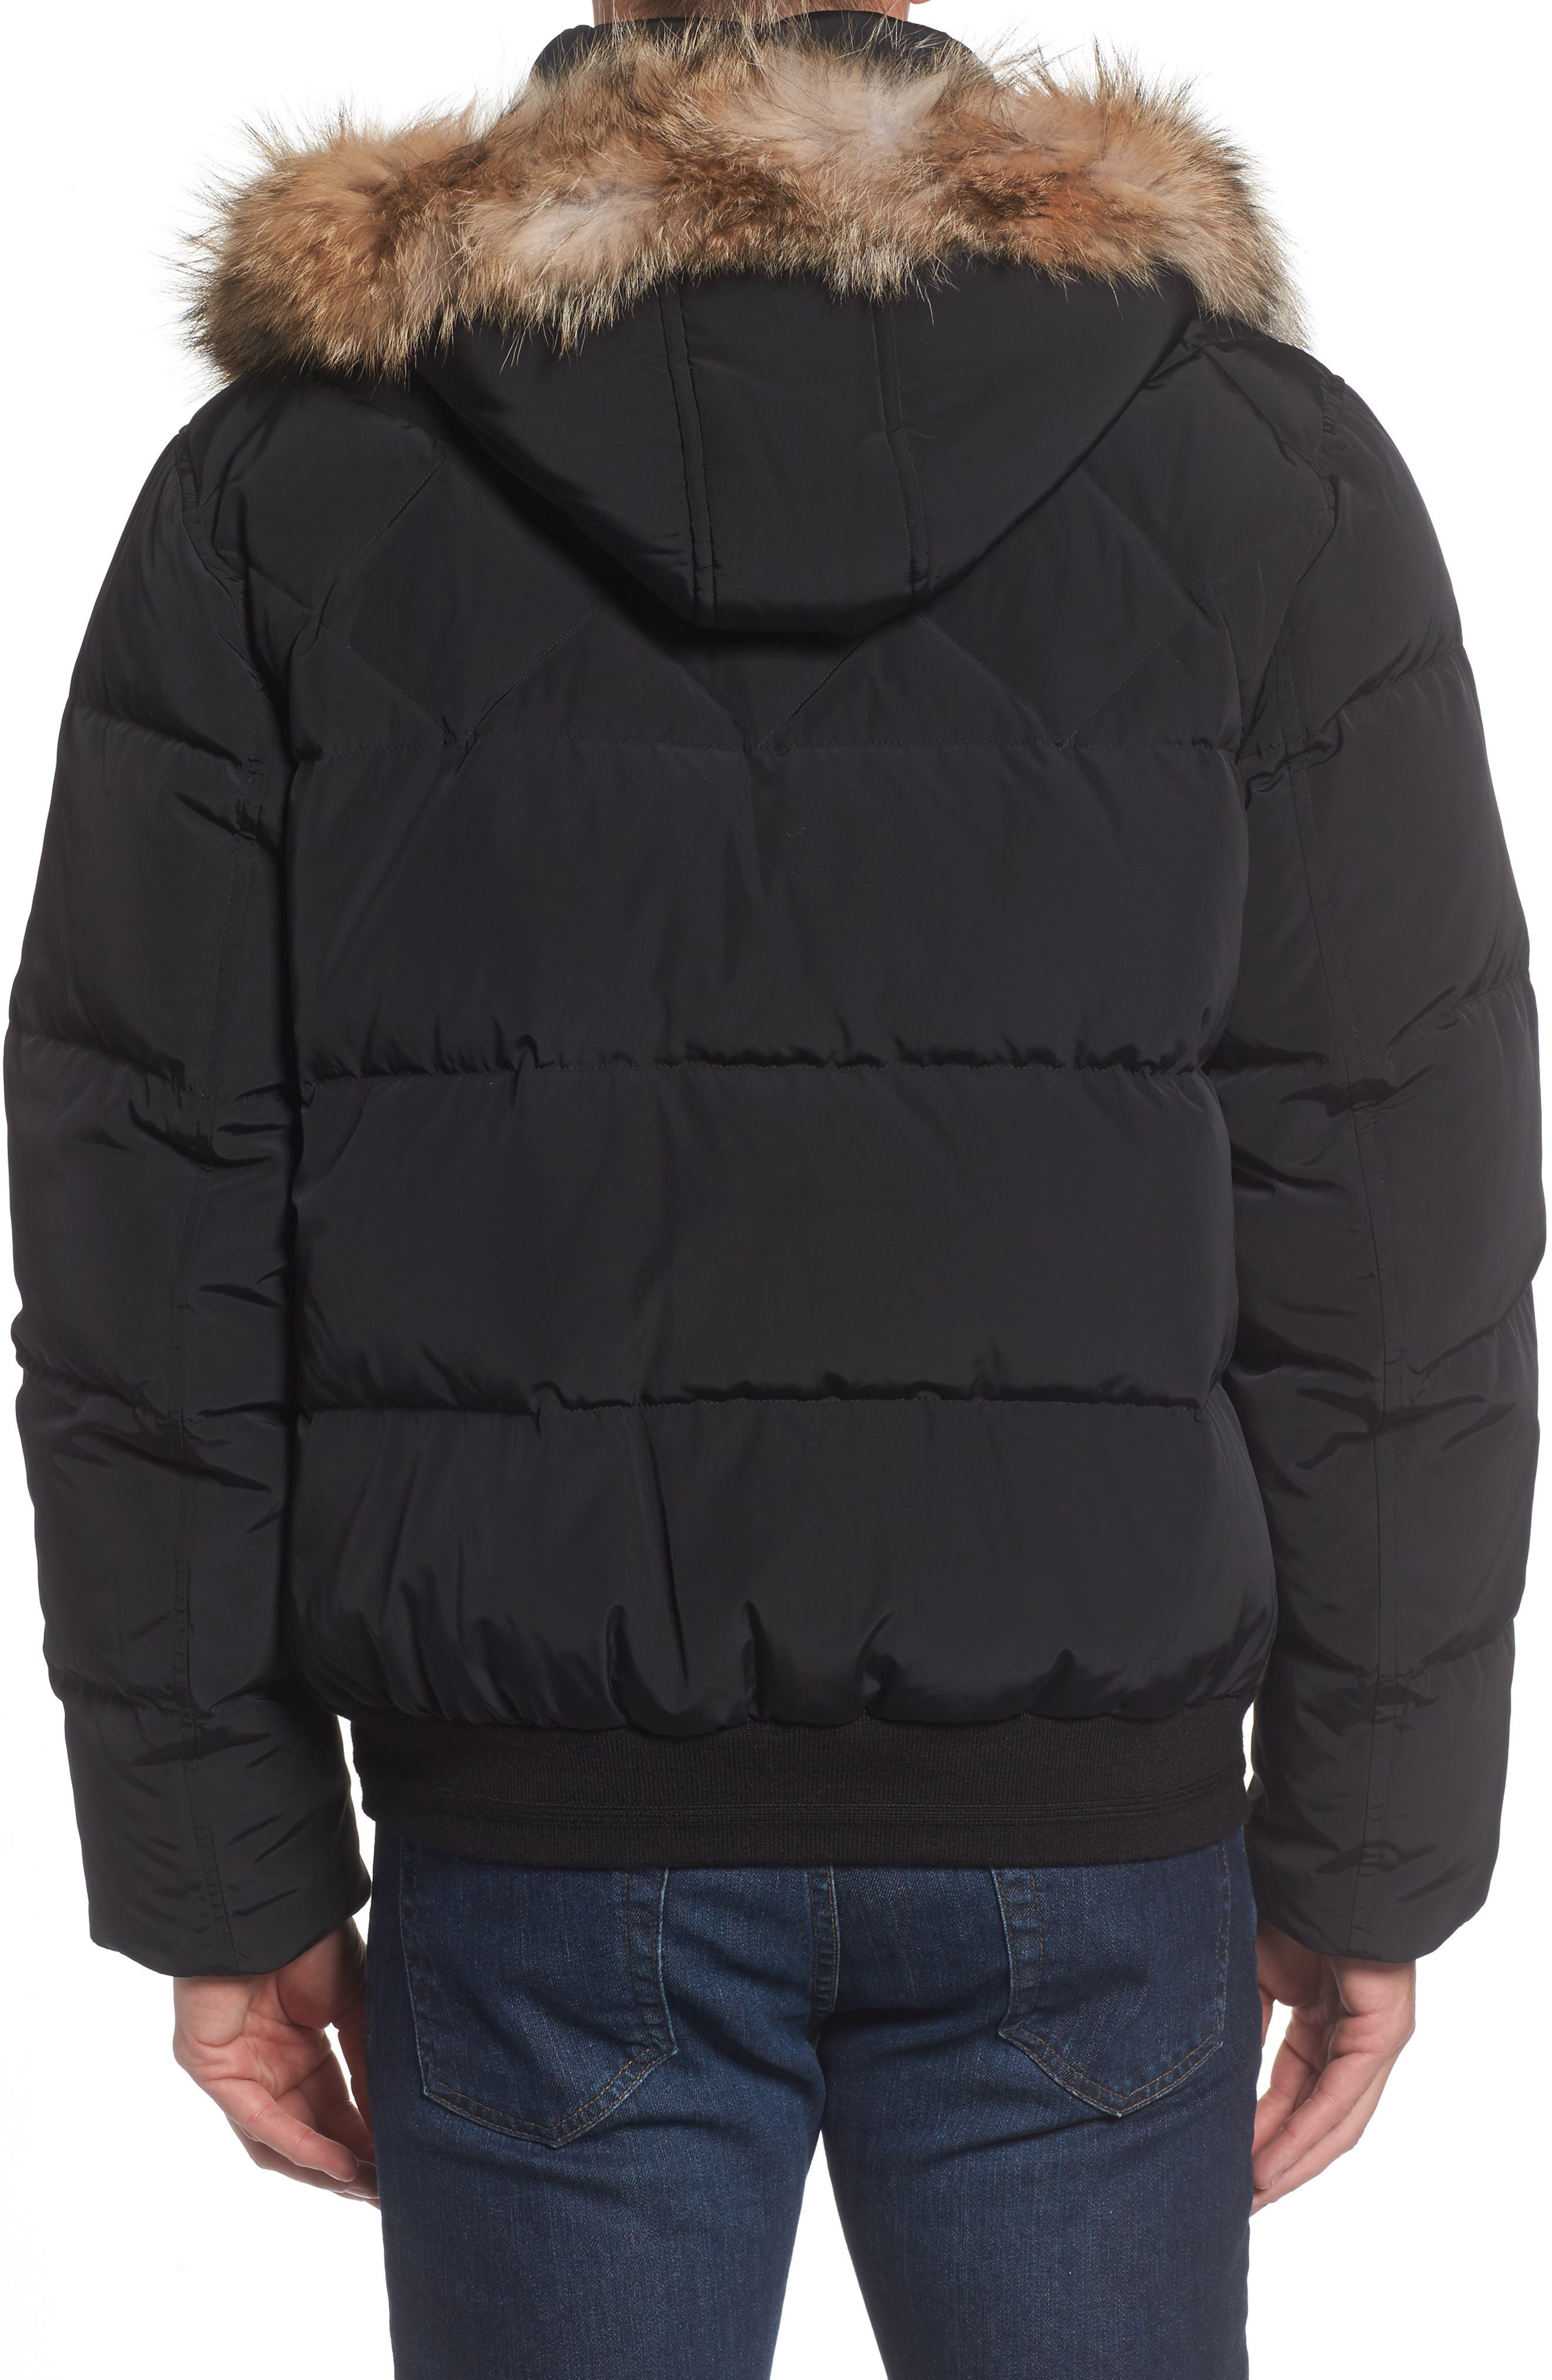 Insulated Jacket with Genuine Coyote Fur,                             Alternate thumbnail 2, color,                             Black